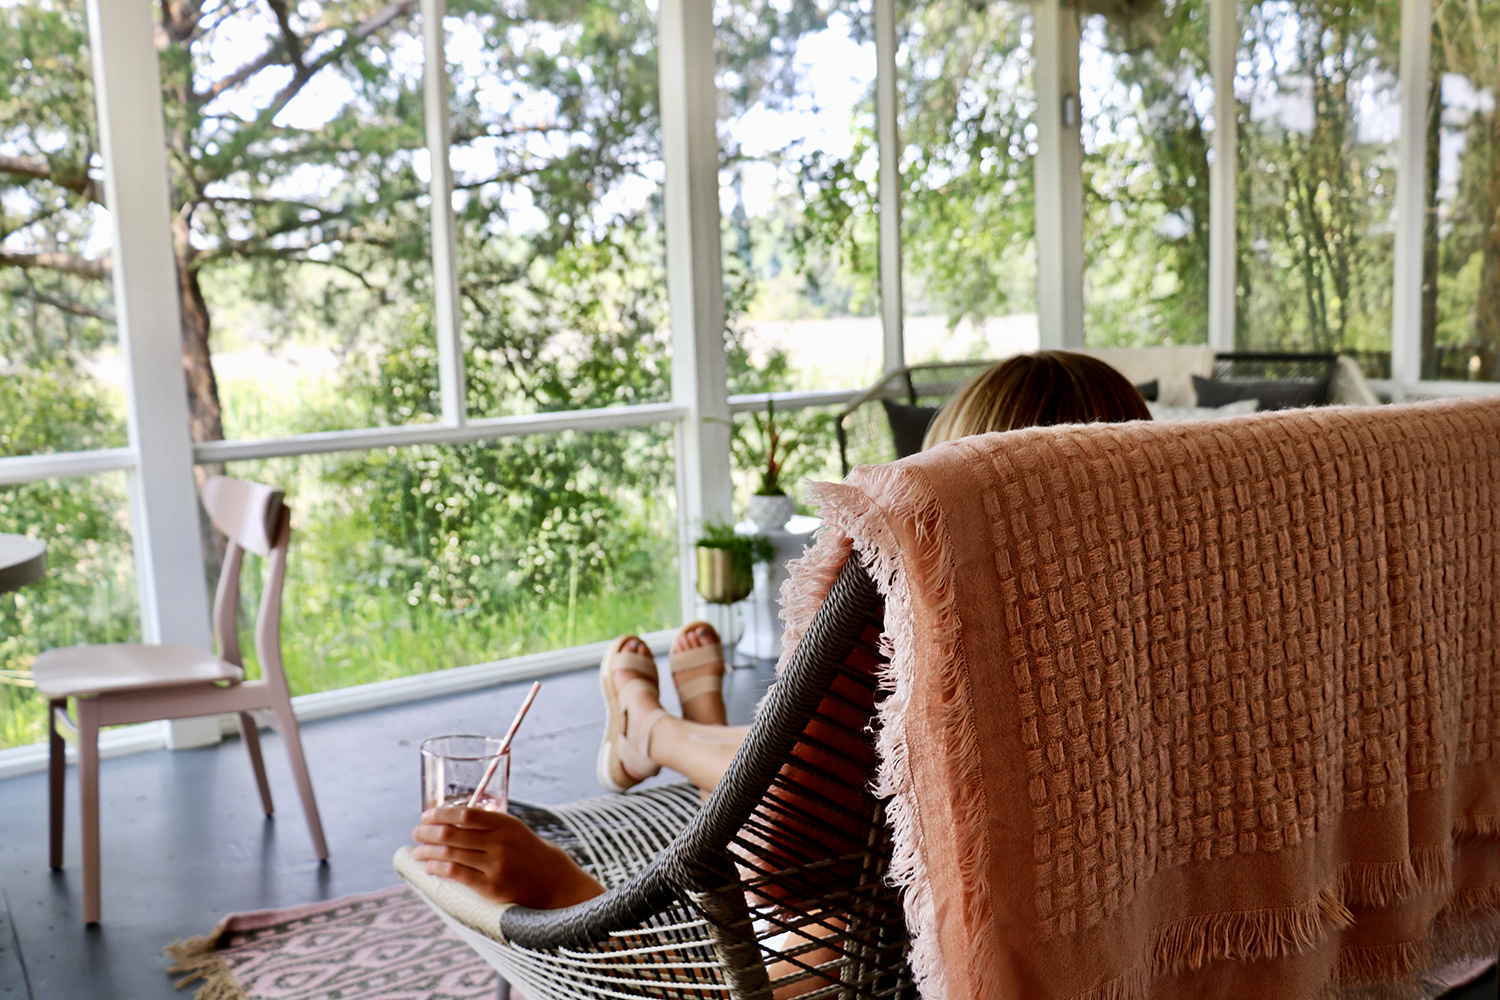 Before or after treatments, guests can relax on the back porch overlooking the unspoiled marshland.